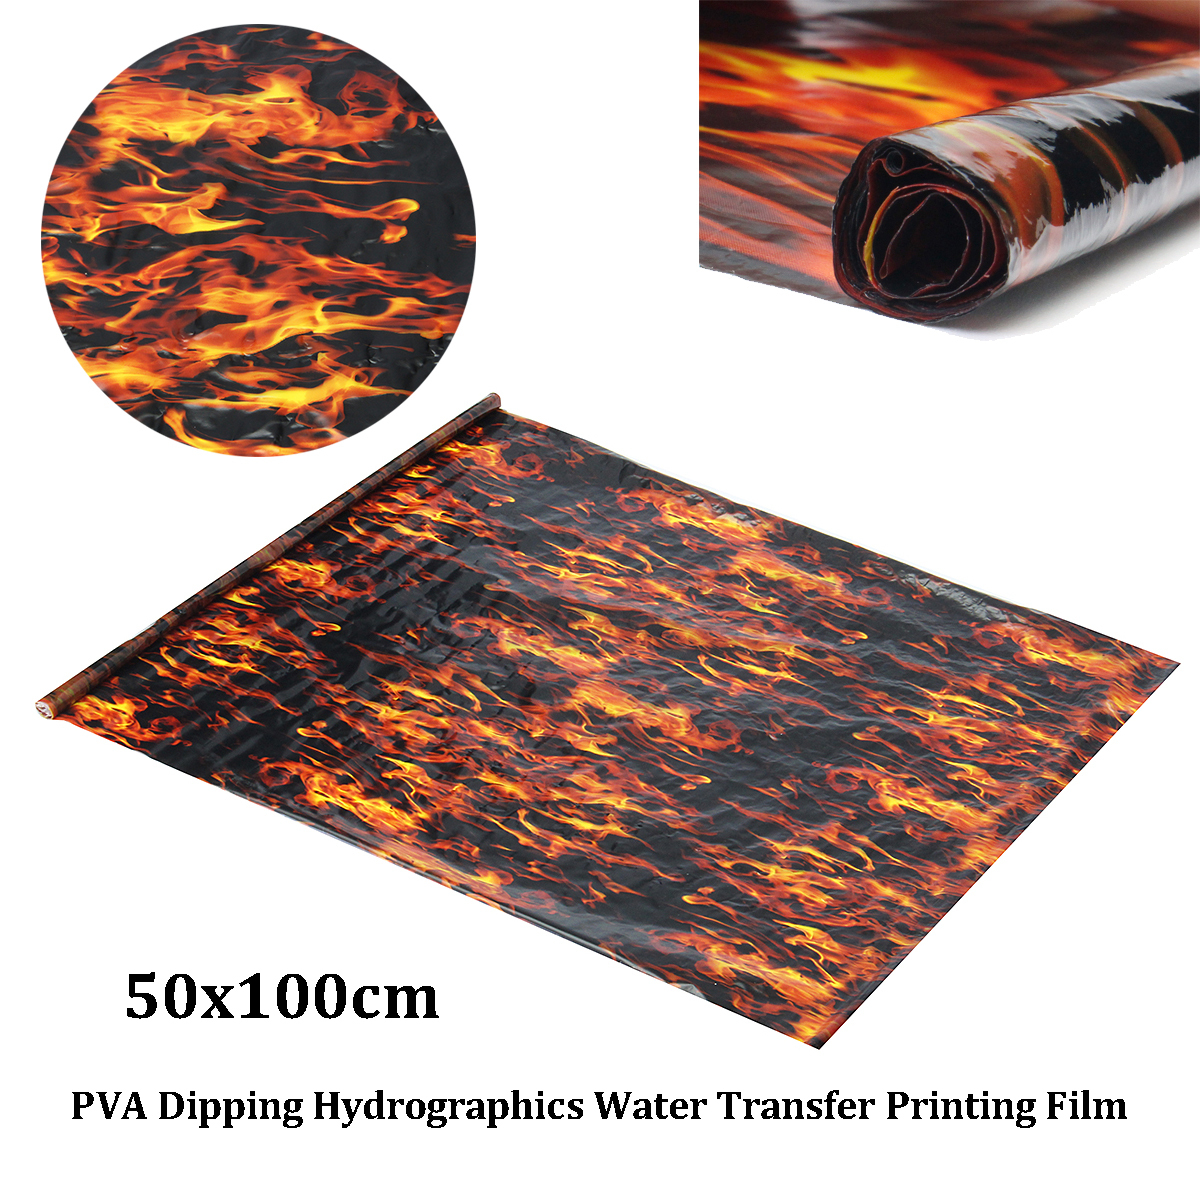 pva hydrographic film water transfer printing film hydro. Black Bedroom Furniture Sets. Home Design Ideas